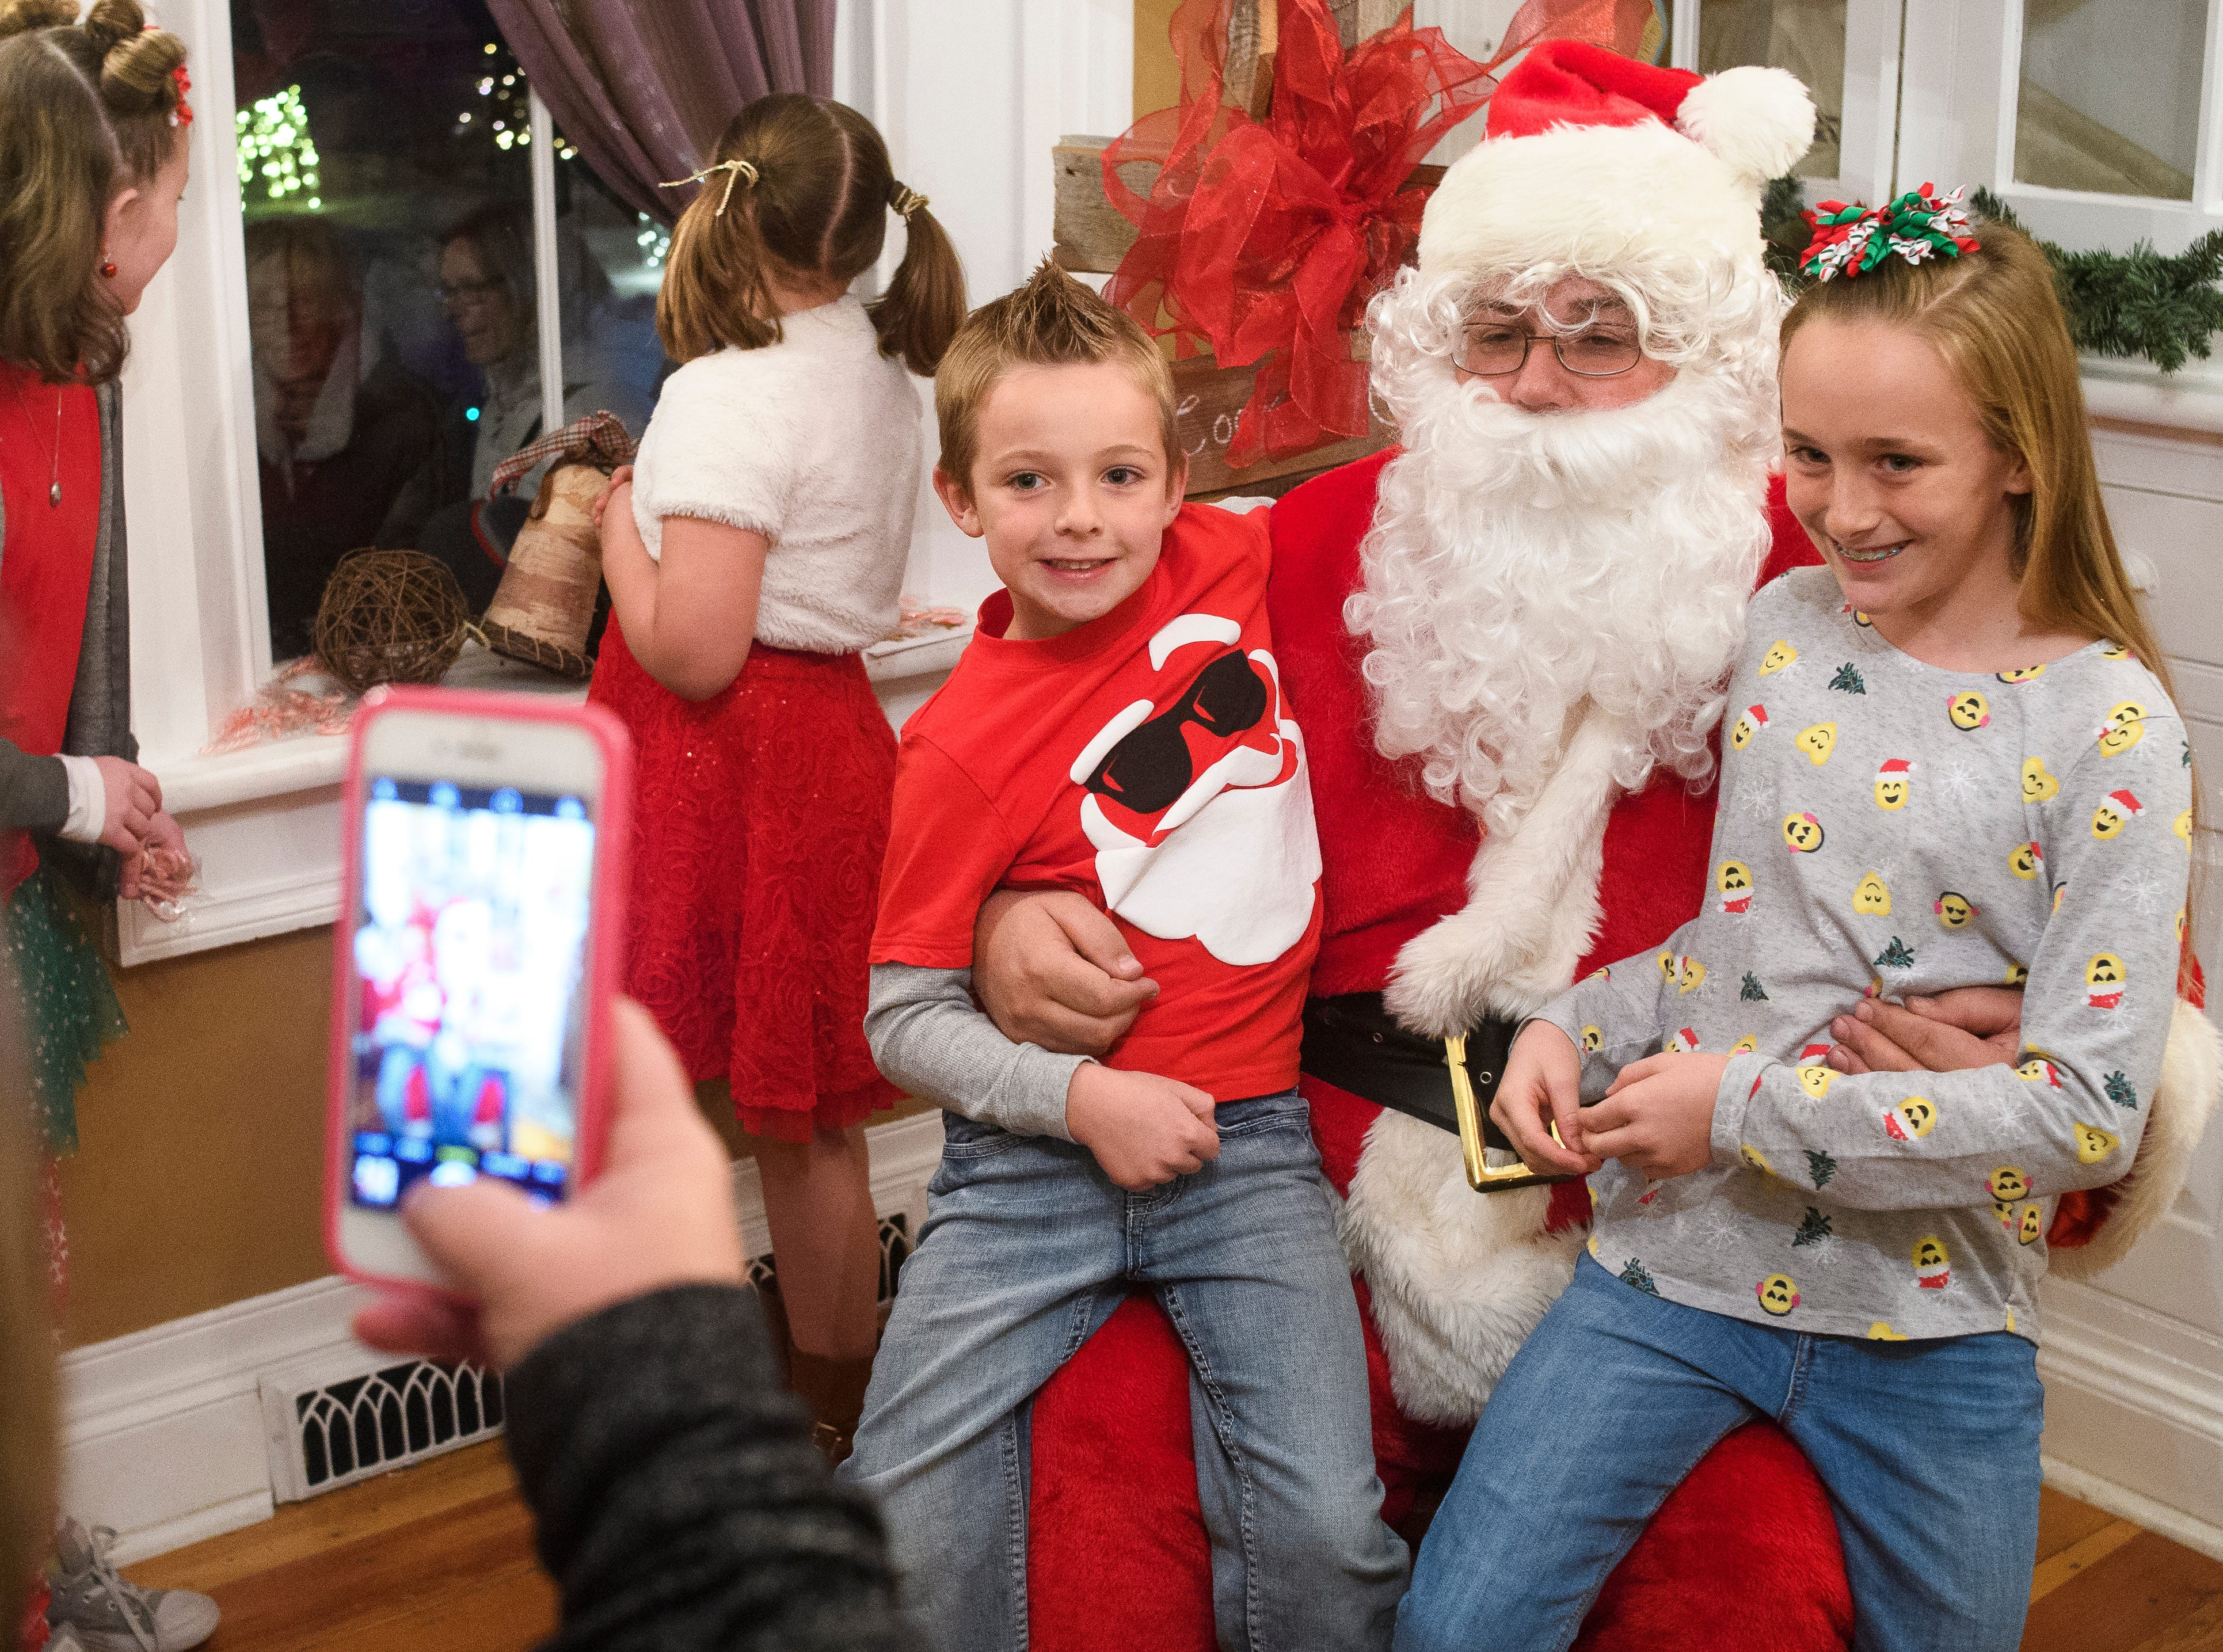 Carson (L) and Lexi Zavoico (R) visit with Santa Claus during Christmas at the Homestead in Frontier Homestead State Park Wednesday, December 5, 2018. The event included live music and crafts.